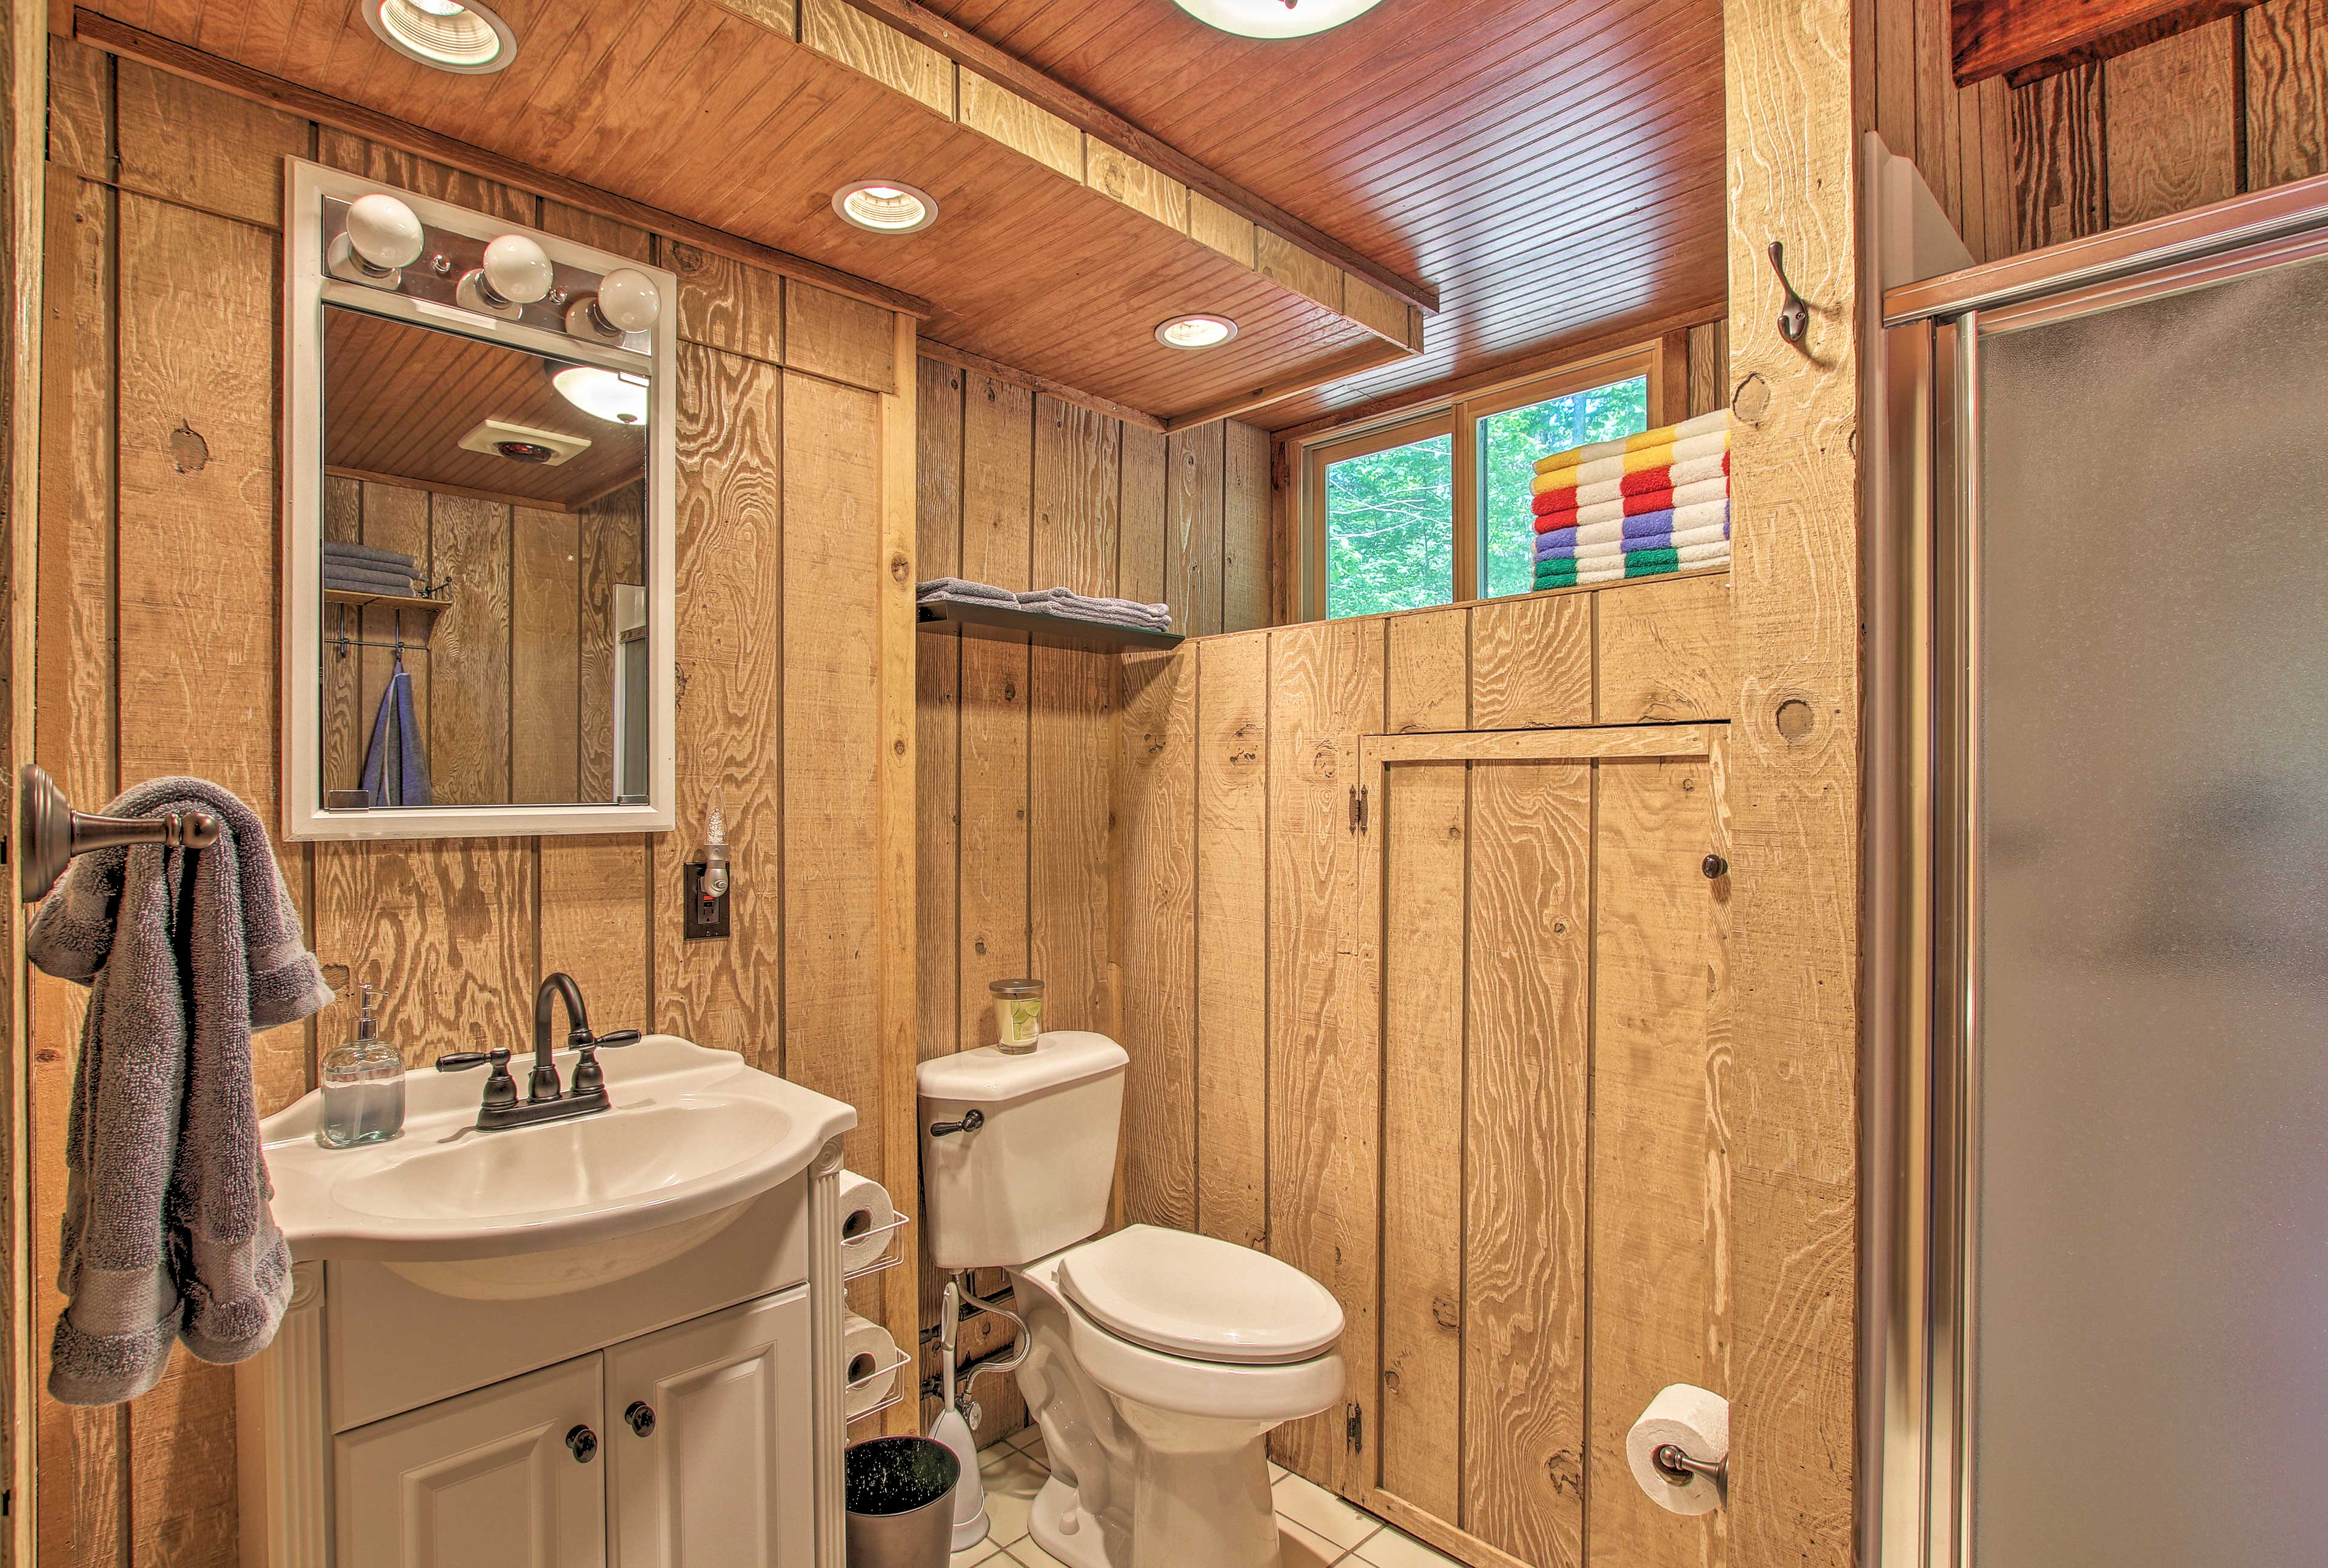 The property includes 2 bathrooms.